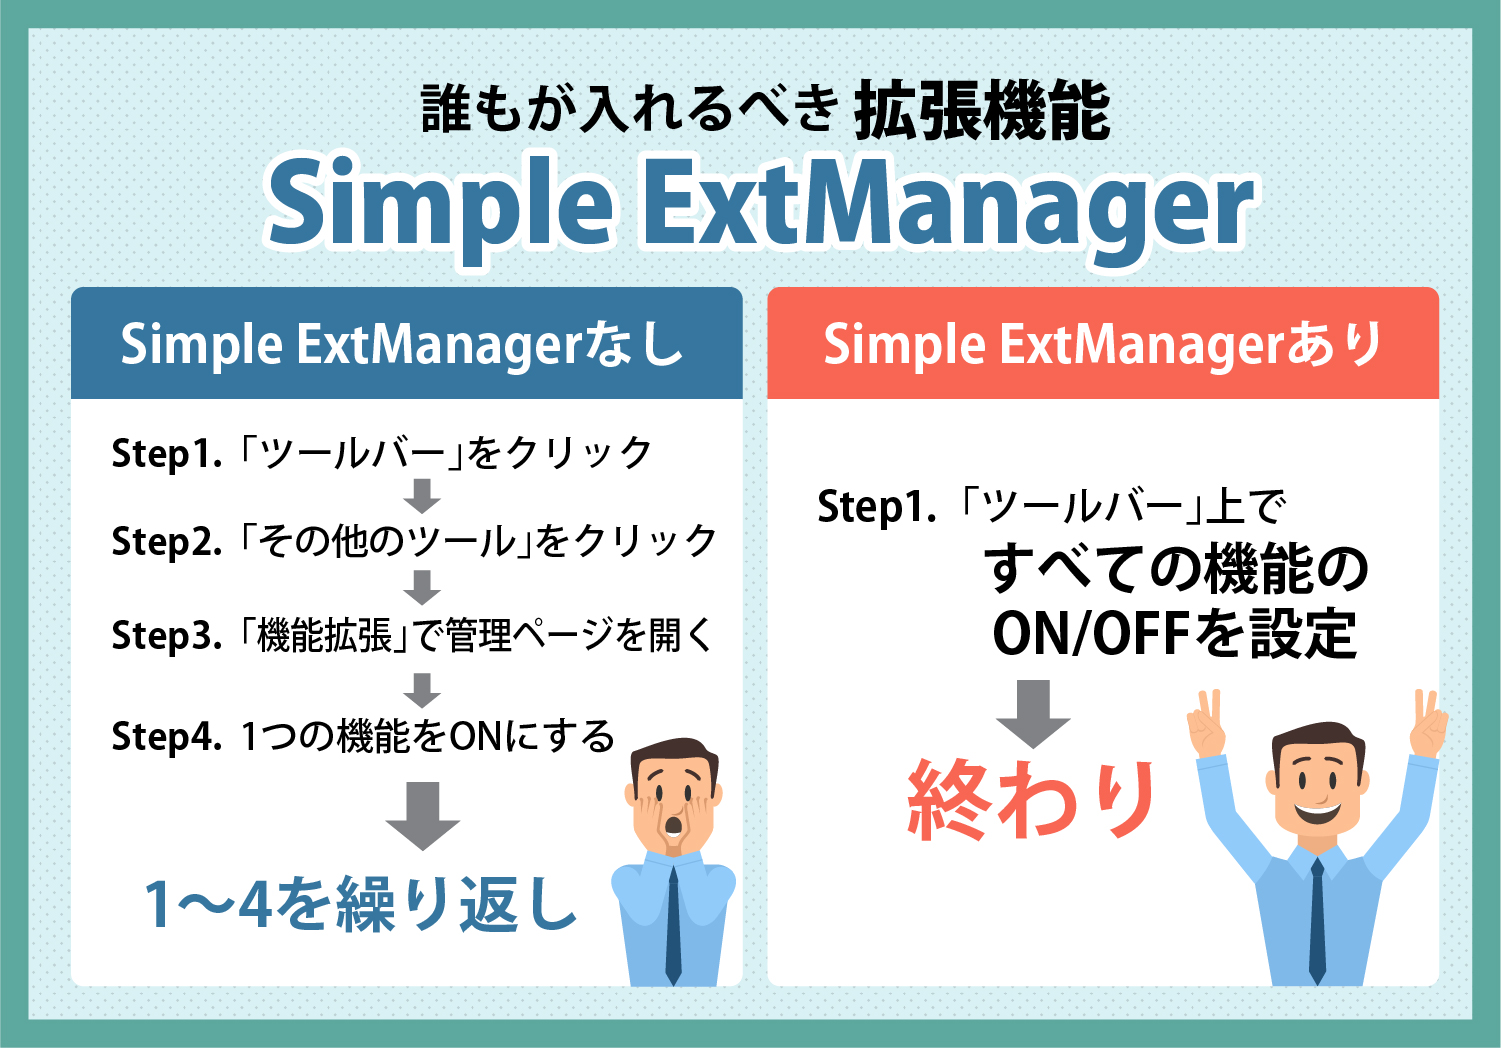 Simple ExtManager